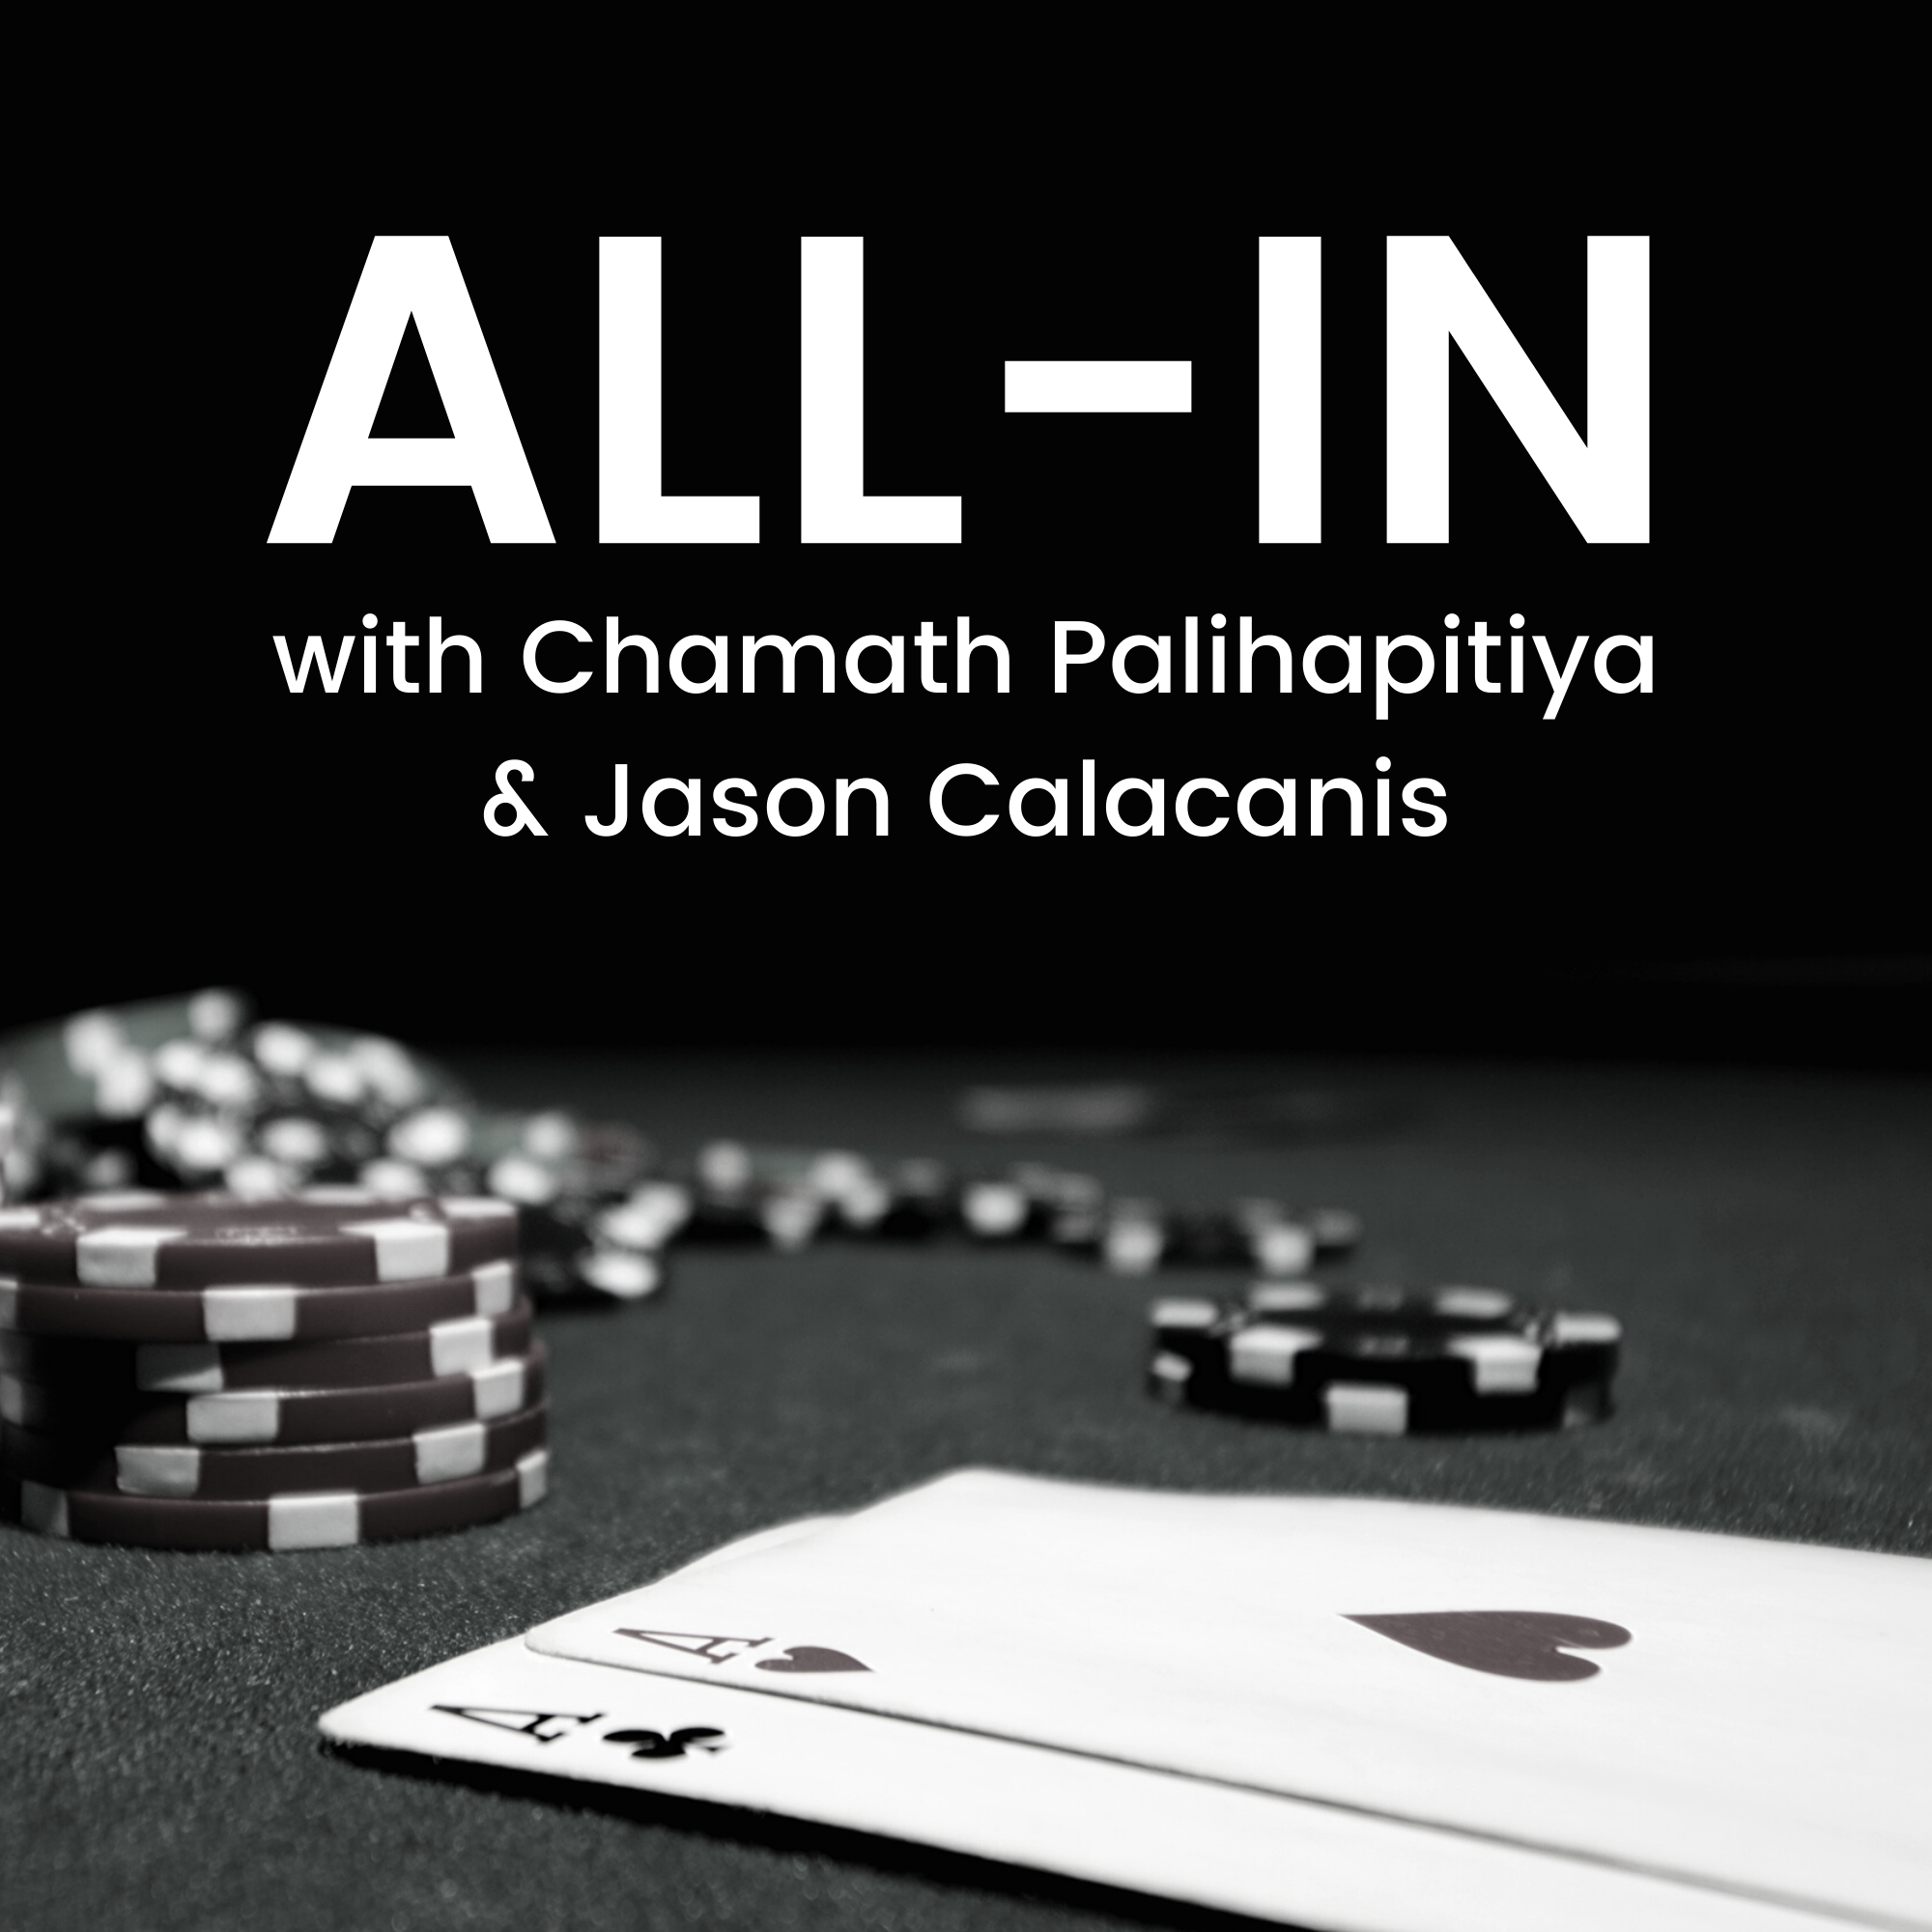 All-In with Chamath Palihapitiya & Jason Calacanis